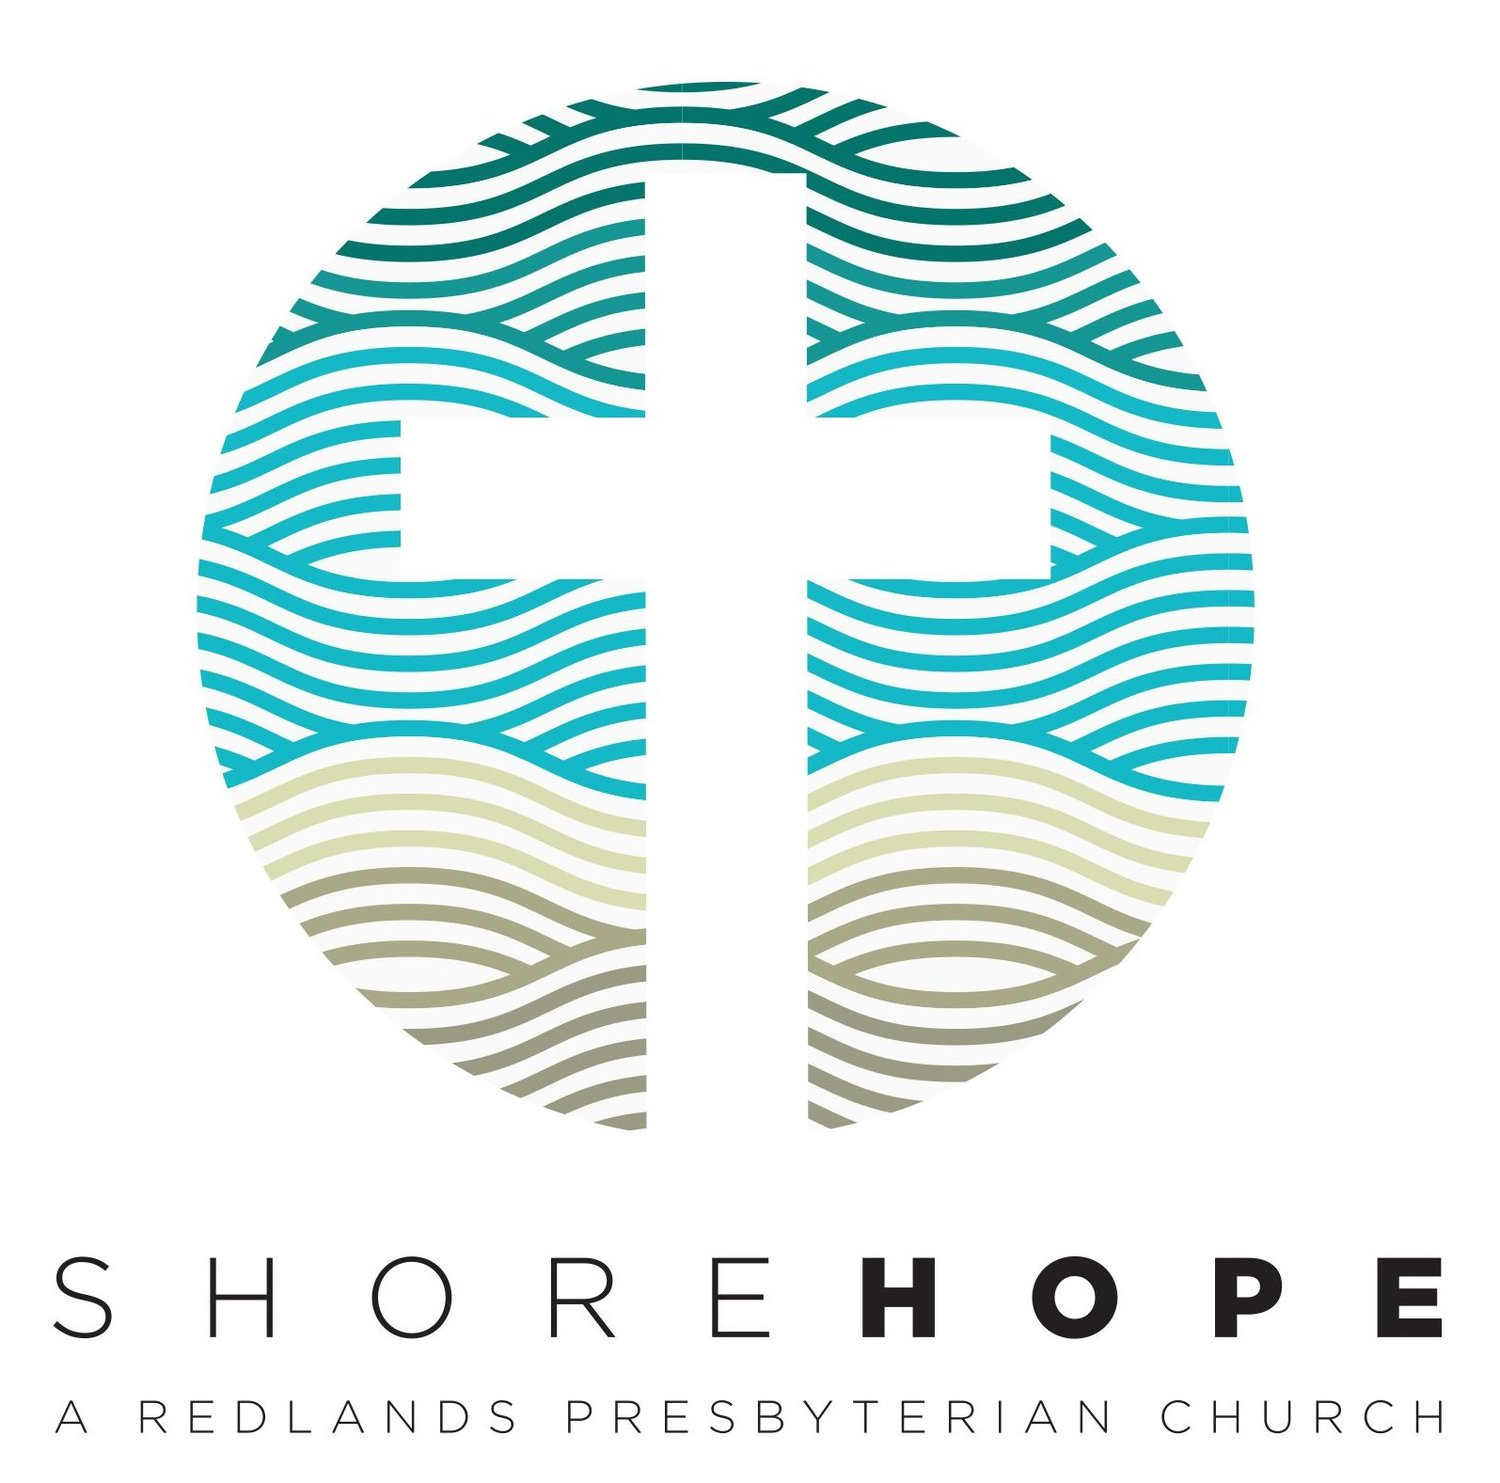 Shore Hope Church